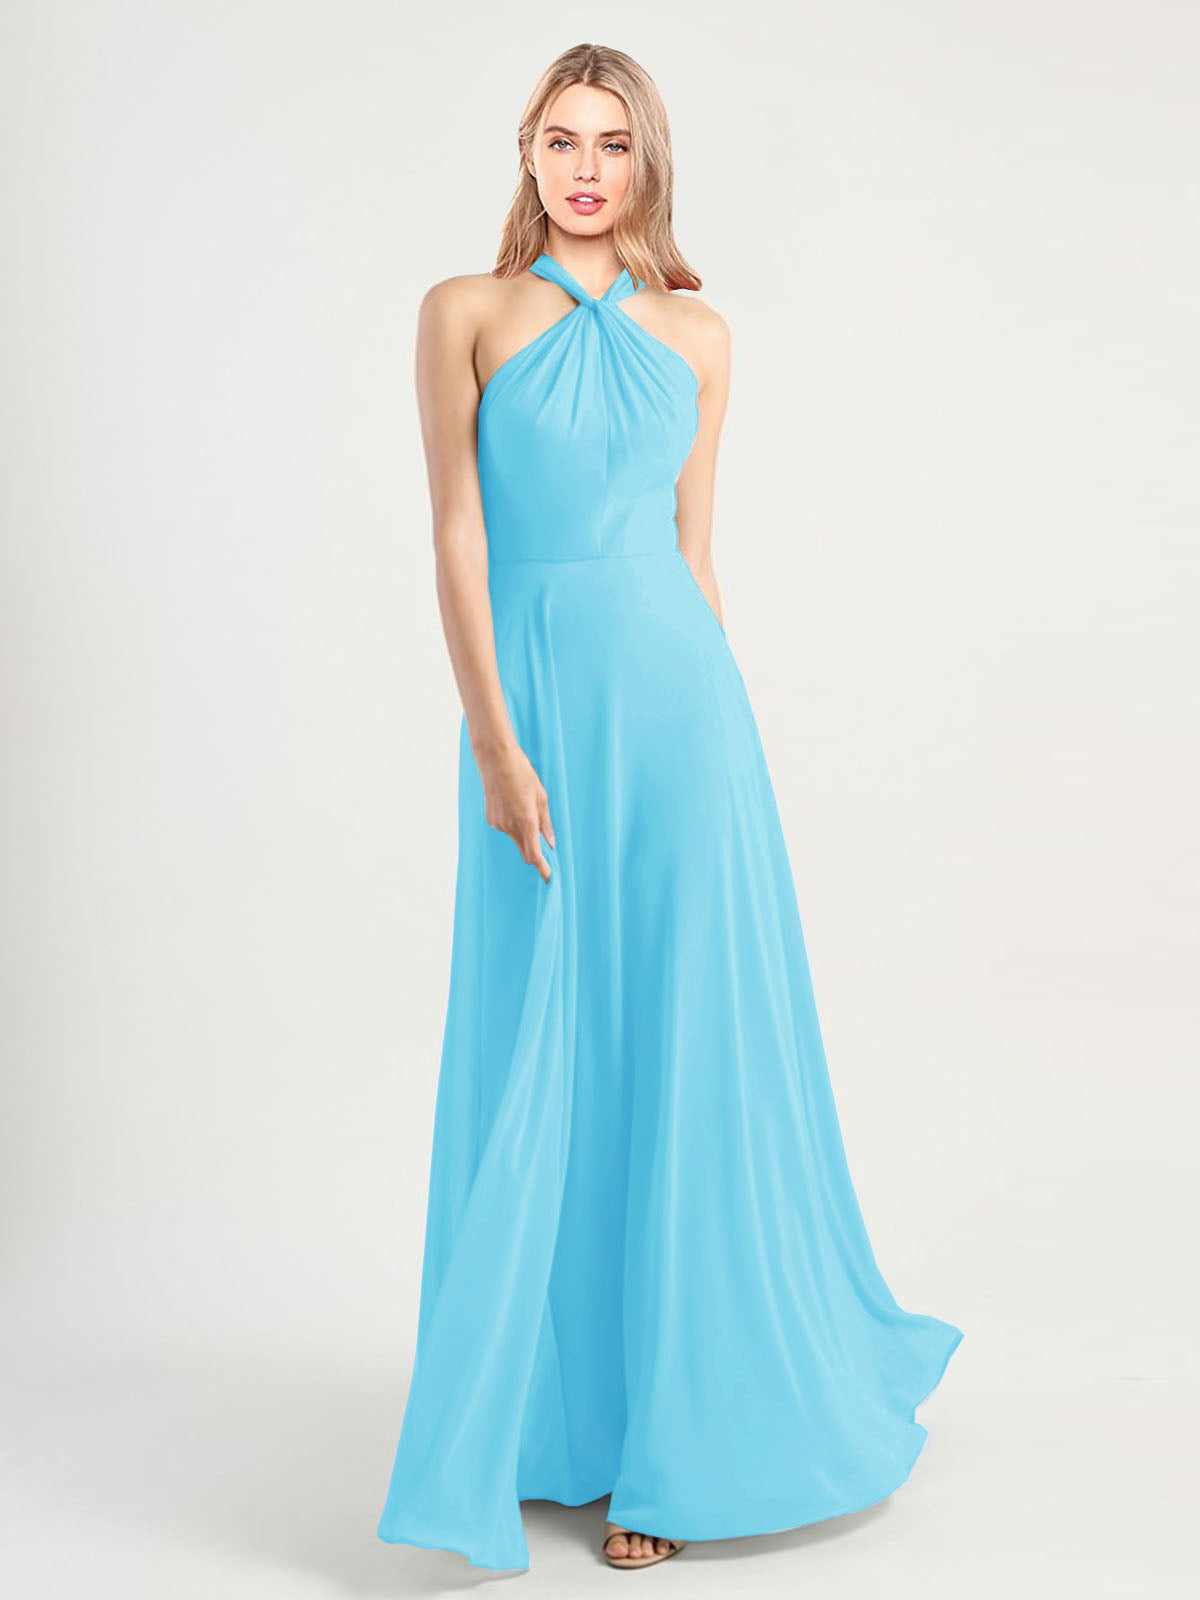 Long A-Line High Neck, Halter Sleeveless Sky Blue Chiffon Bridesmaid Dress Yoli